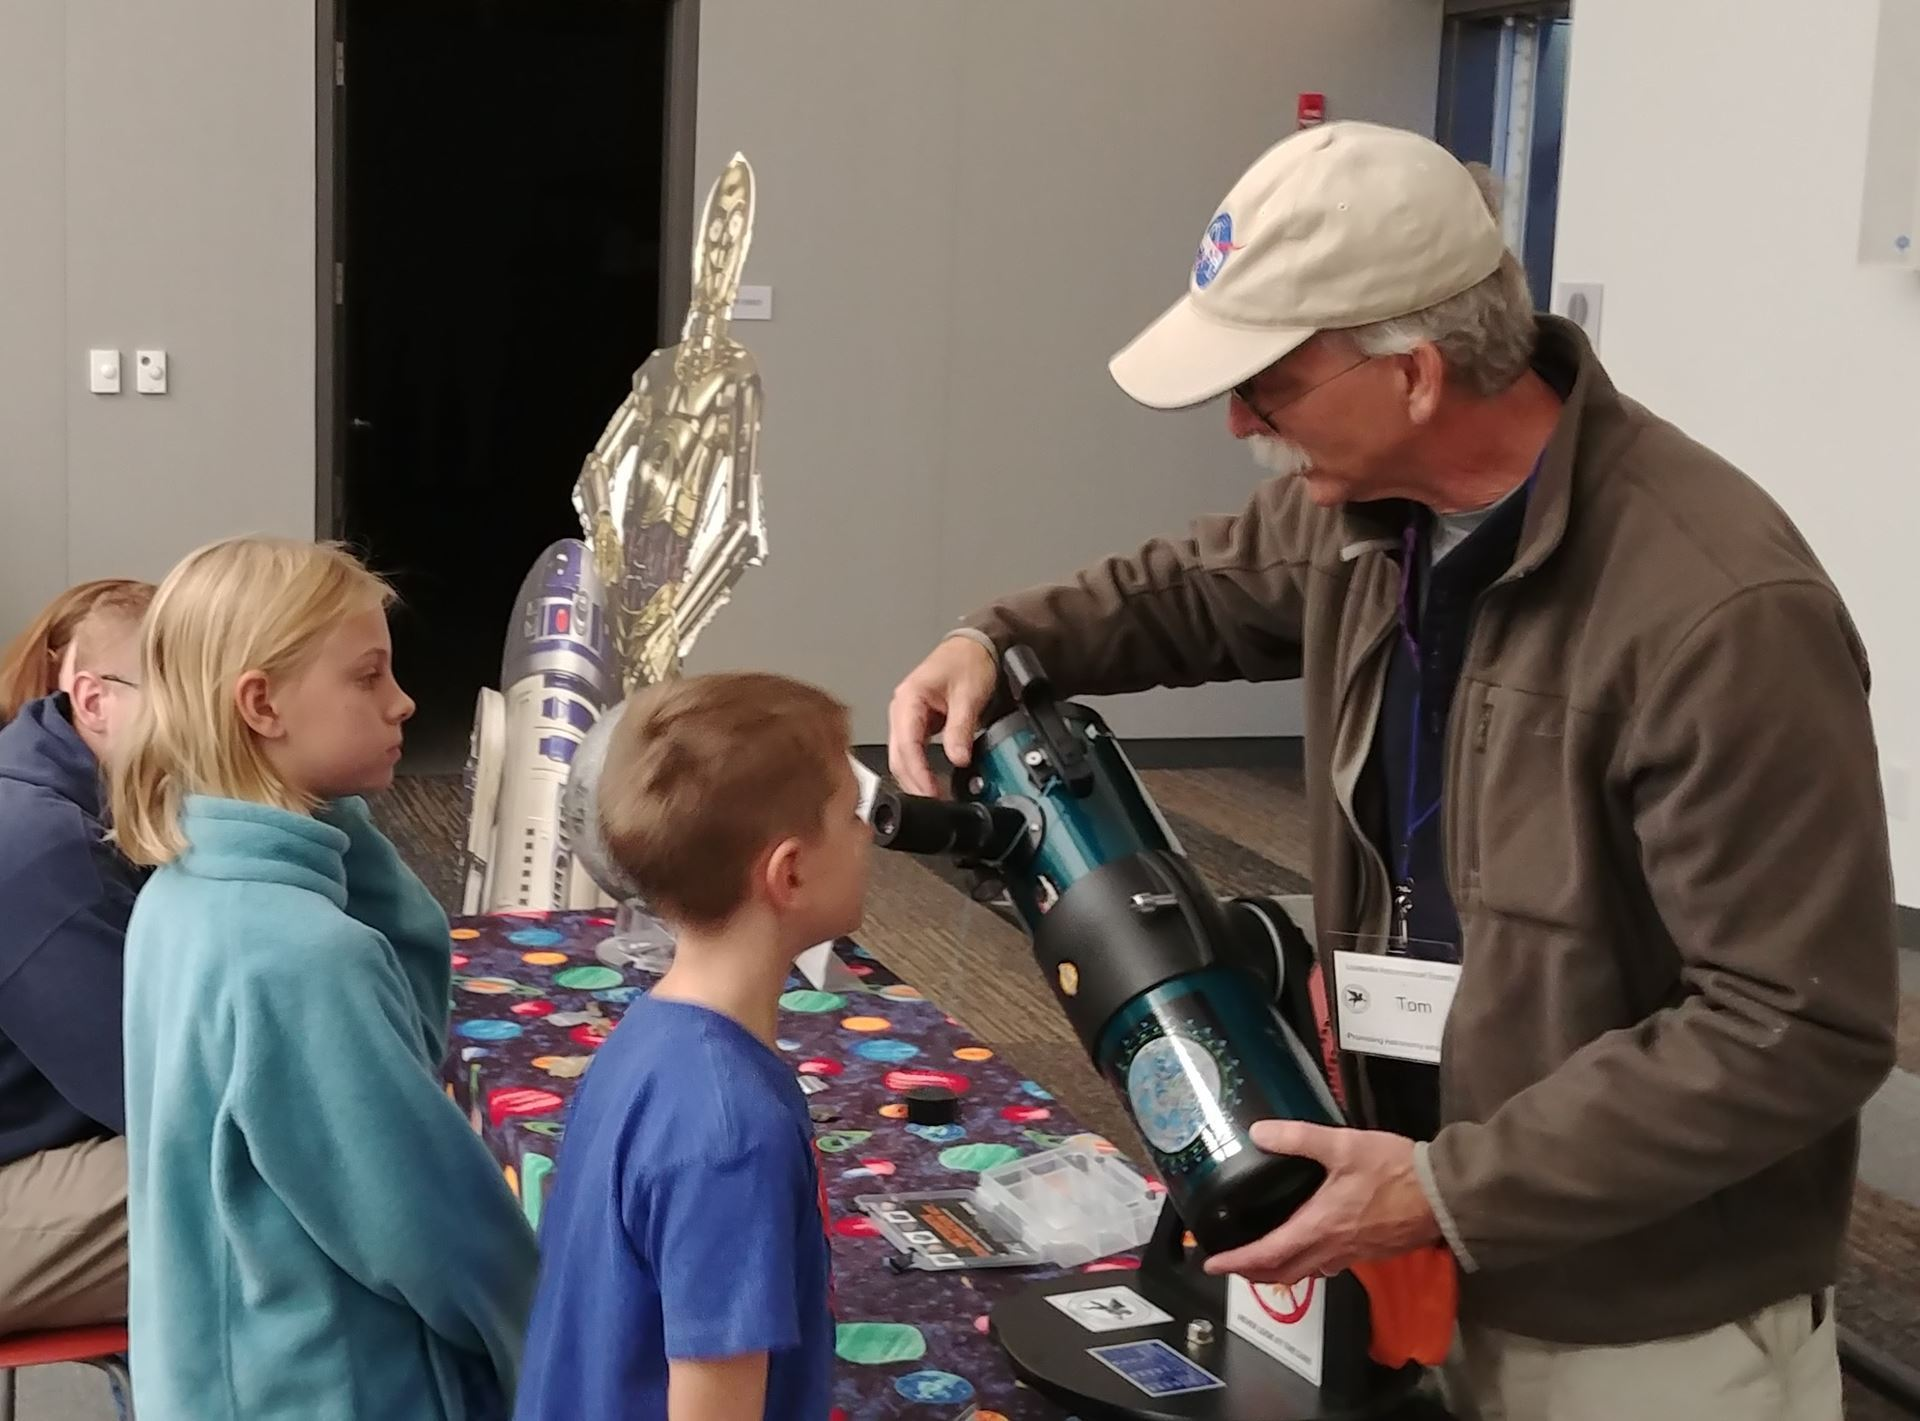 LAS Library Telescope Program with Tom Bibb